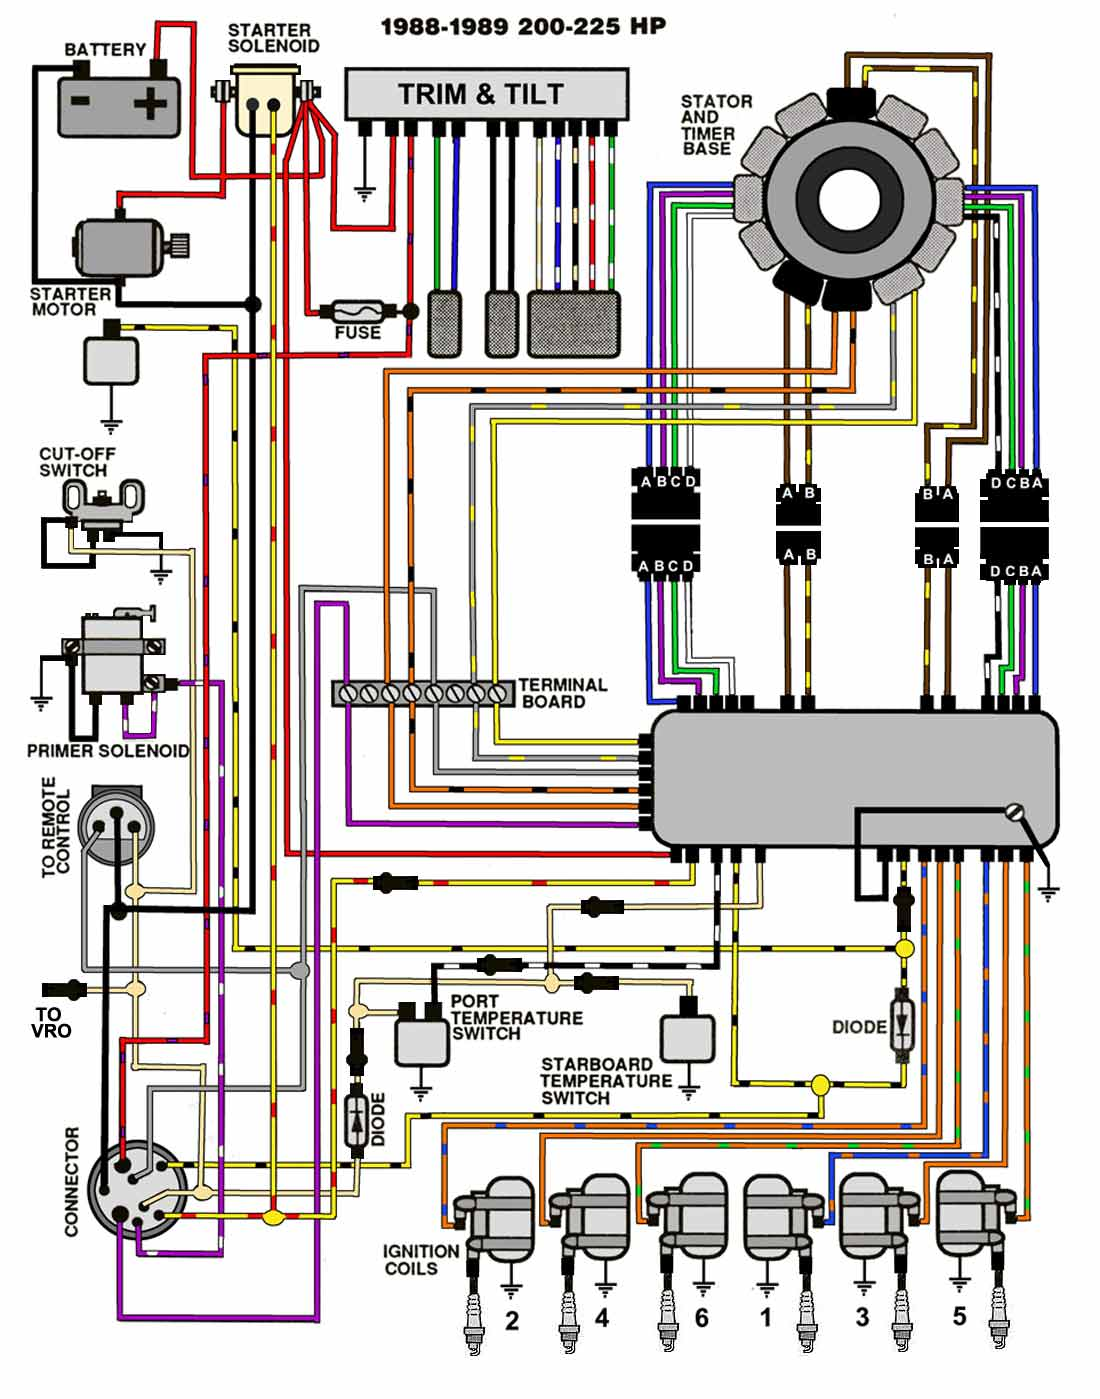 1989 Omc Wiring Diagram - Wiring Diagrams List Omc Sterndrive Wiring Diagram on